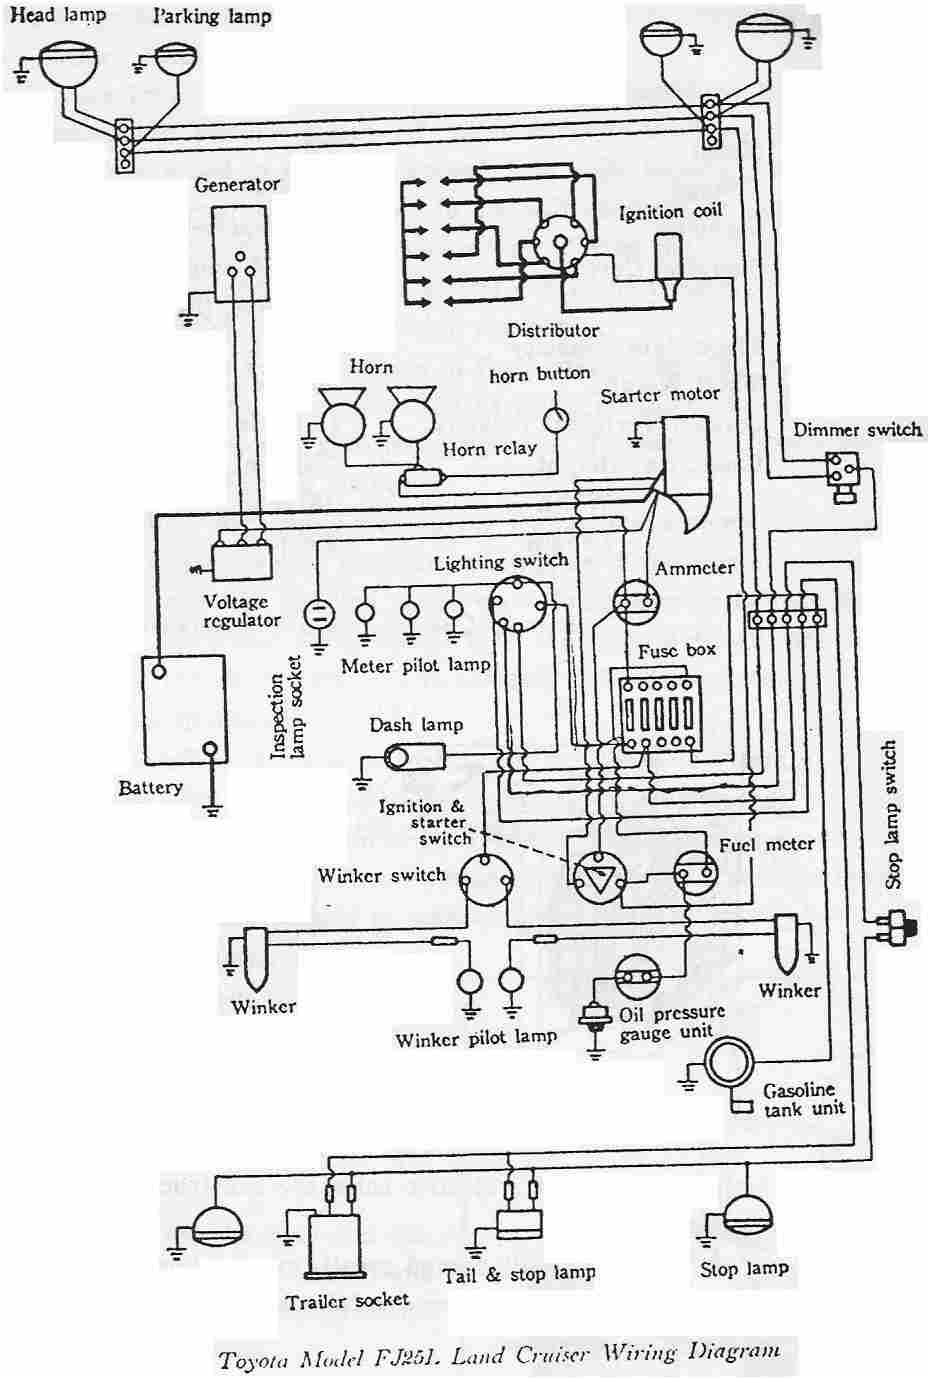 toyota land cruiser fj25 electrical wiring diagram wiring diagram for toro proline 724 [ 929 x 1378 Pixel ]